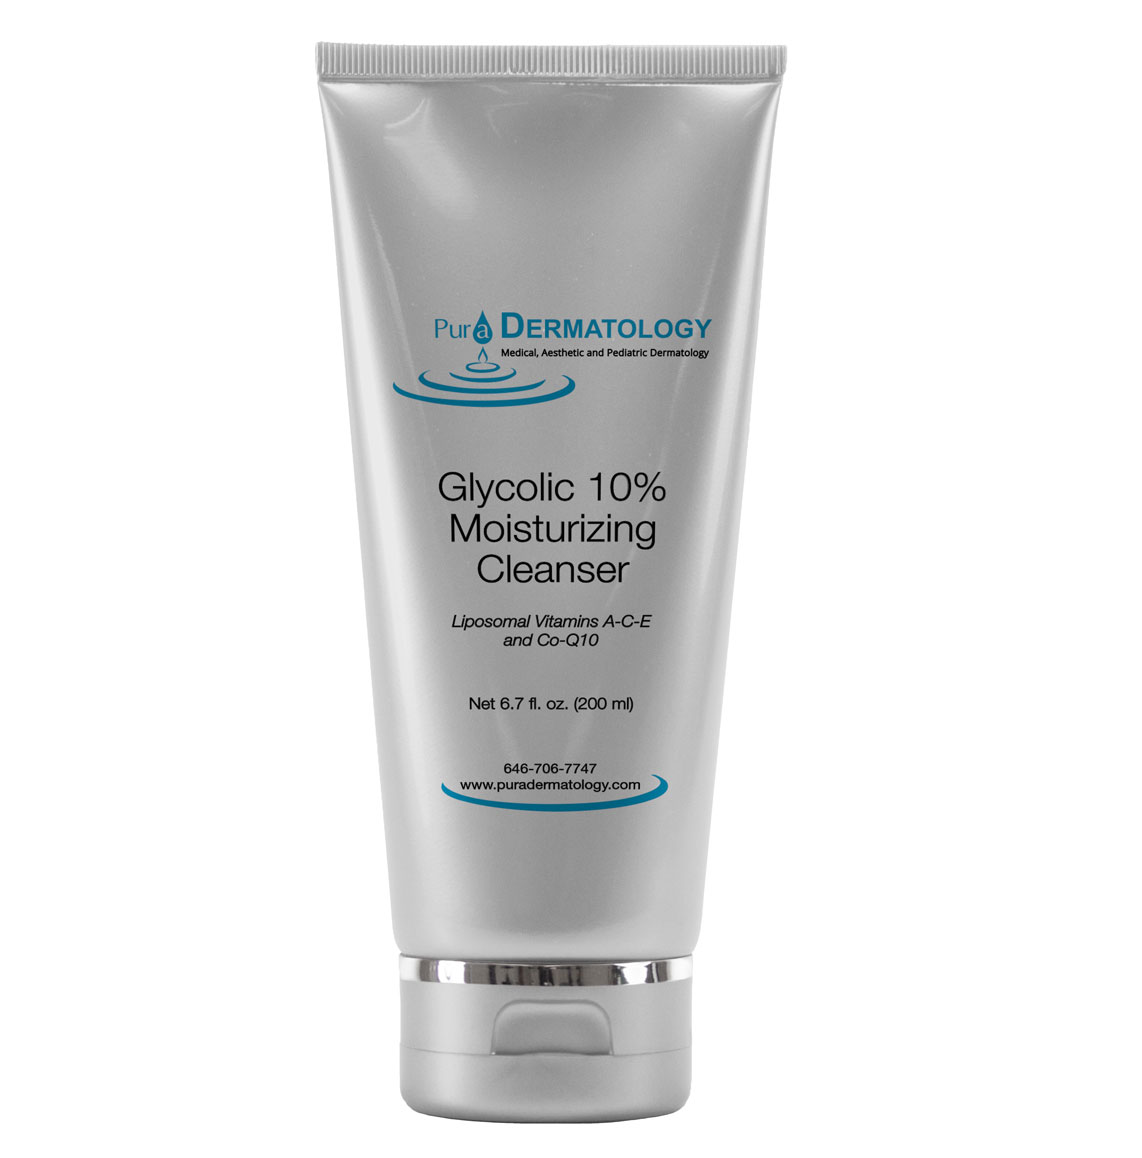 Glycolic Moisturizing Cleanser